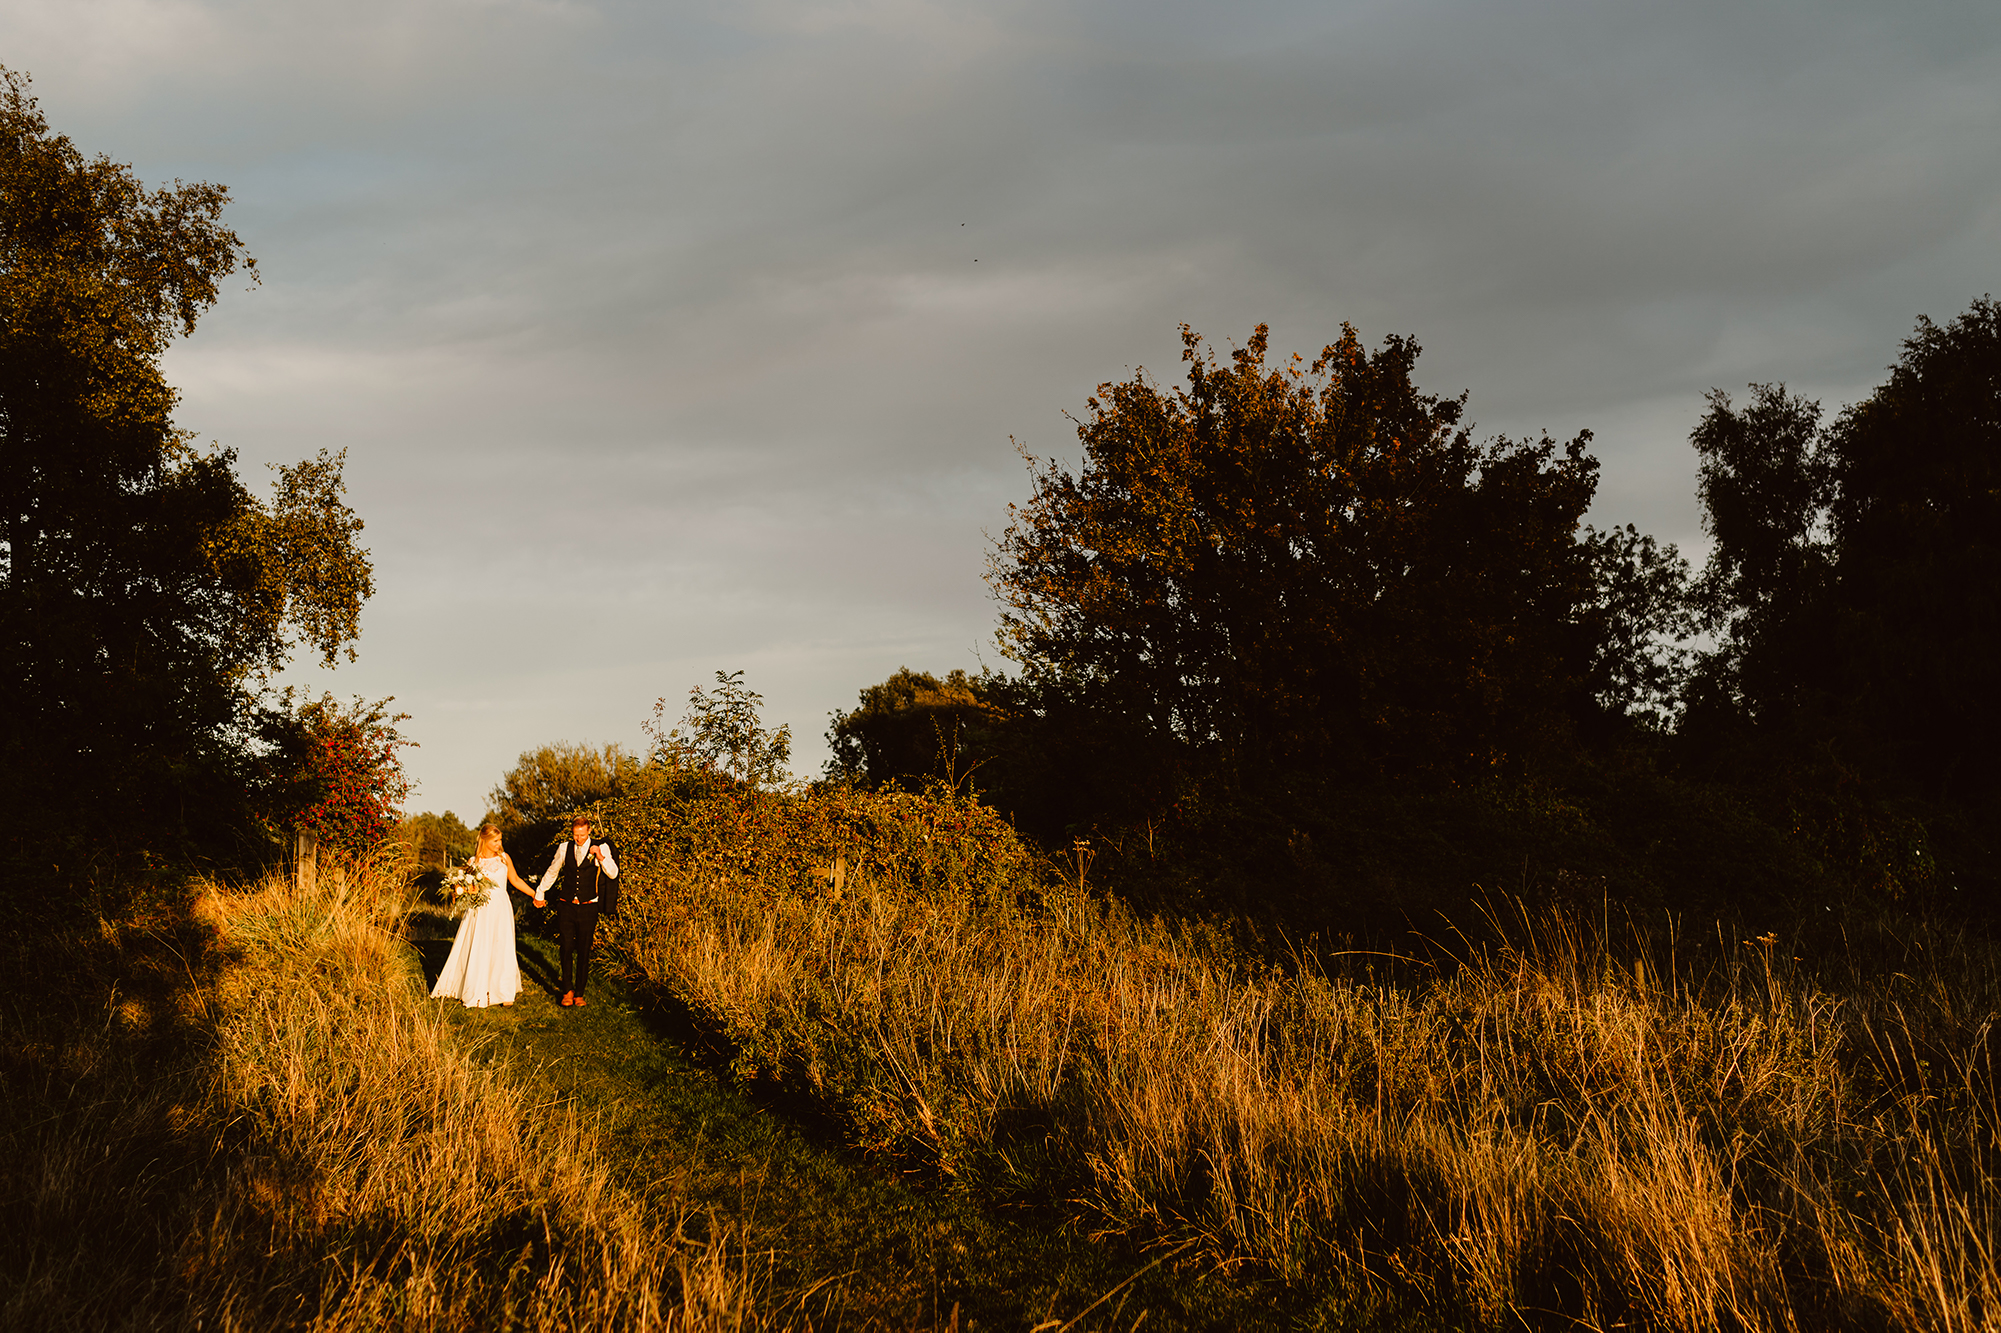 Bride and Groom Genevieve & John Walking Hand in Hand at Sunset at Ivy House Country Hotel